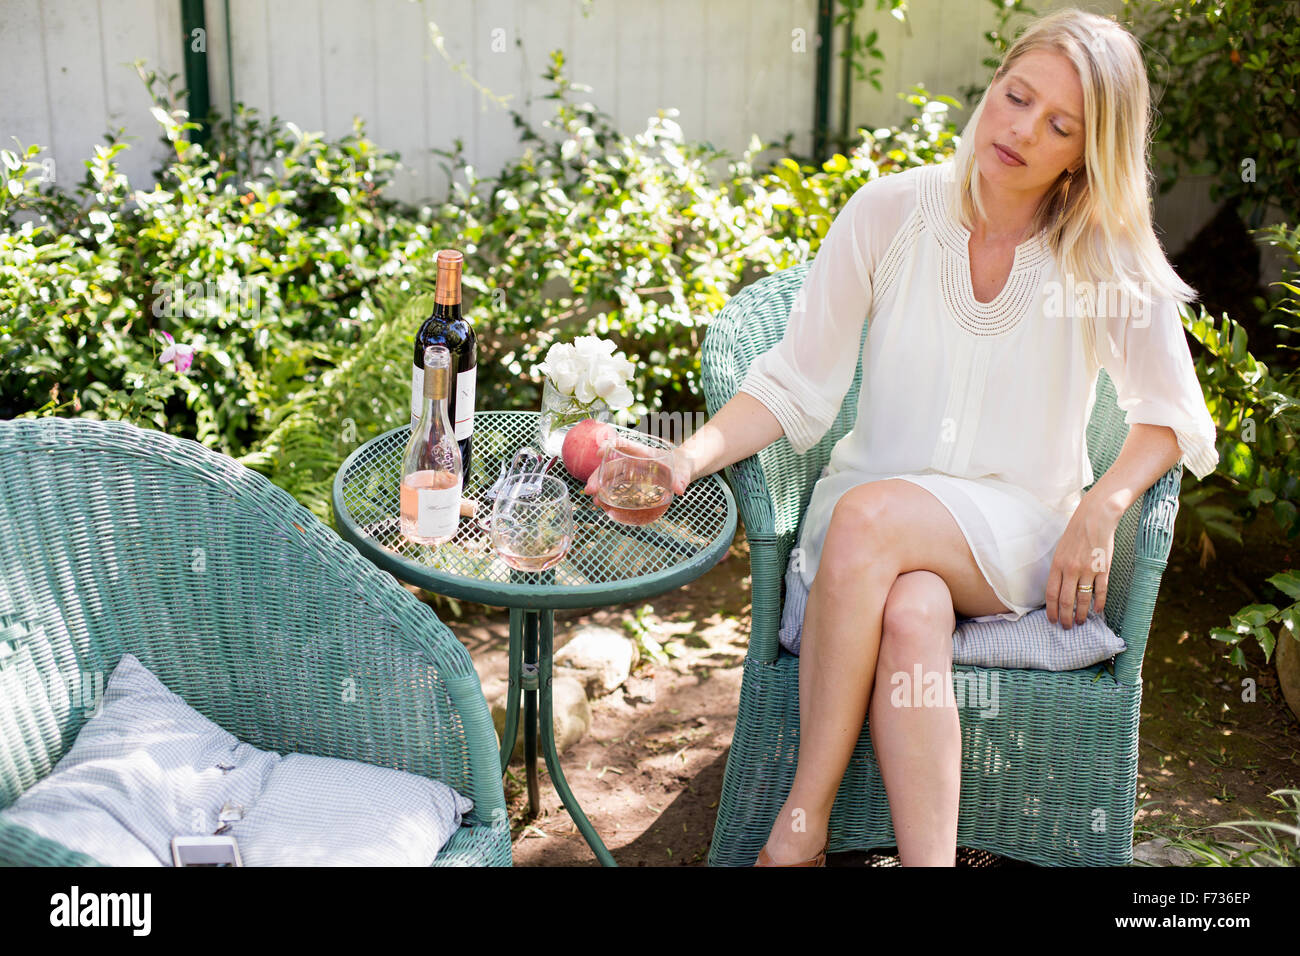 Blond woman sitting in a wicker chair in a garden with a glass of wine. - Stock Image